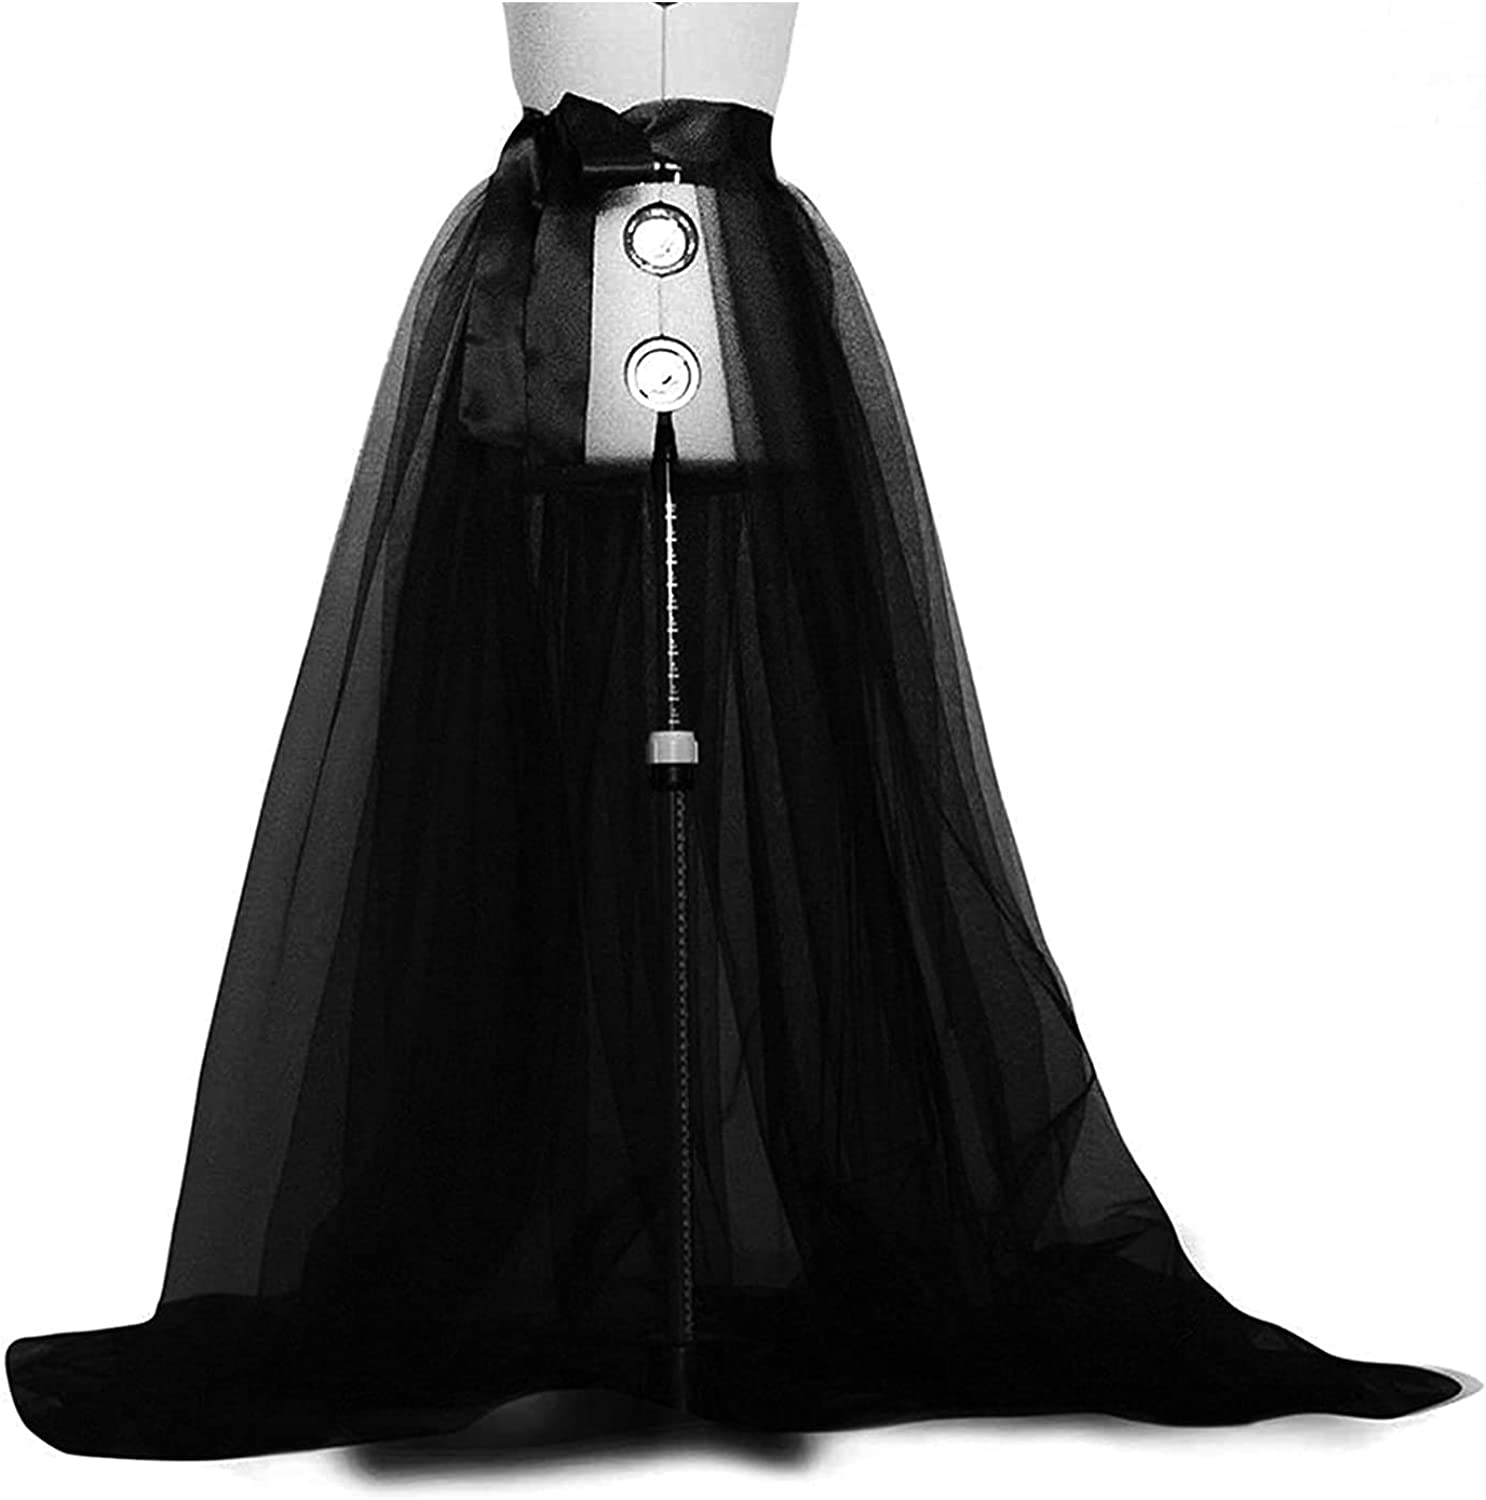 Women Tulle Skirt High Slit Layered Puffy Long Skirts Wedding Night Out Party Adult Tutu Skirts